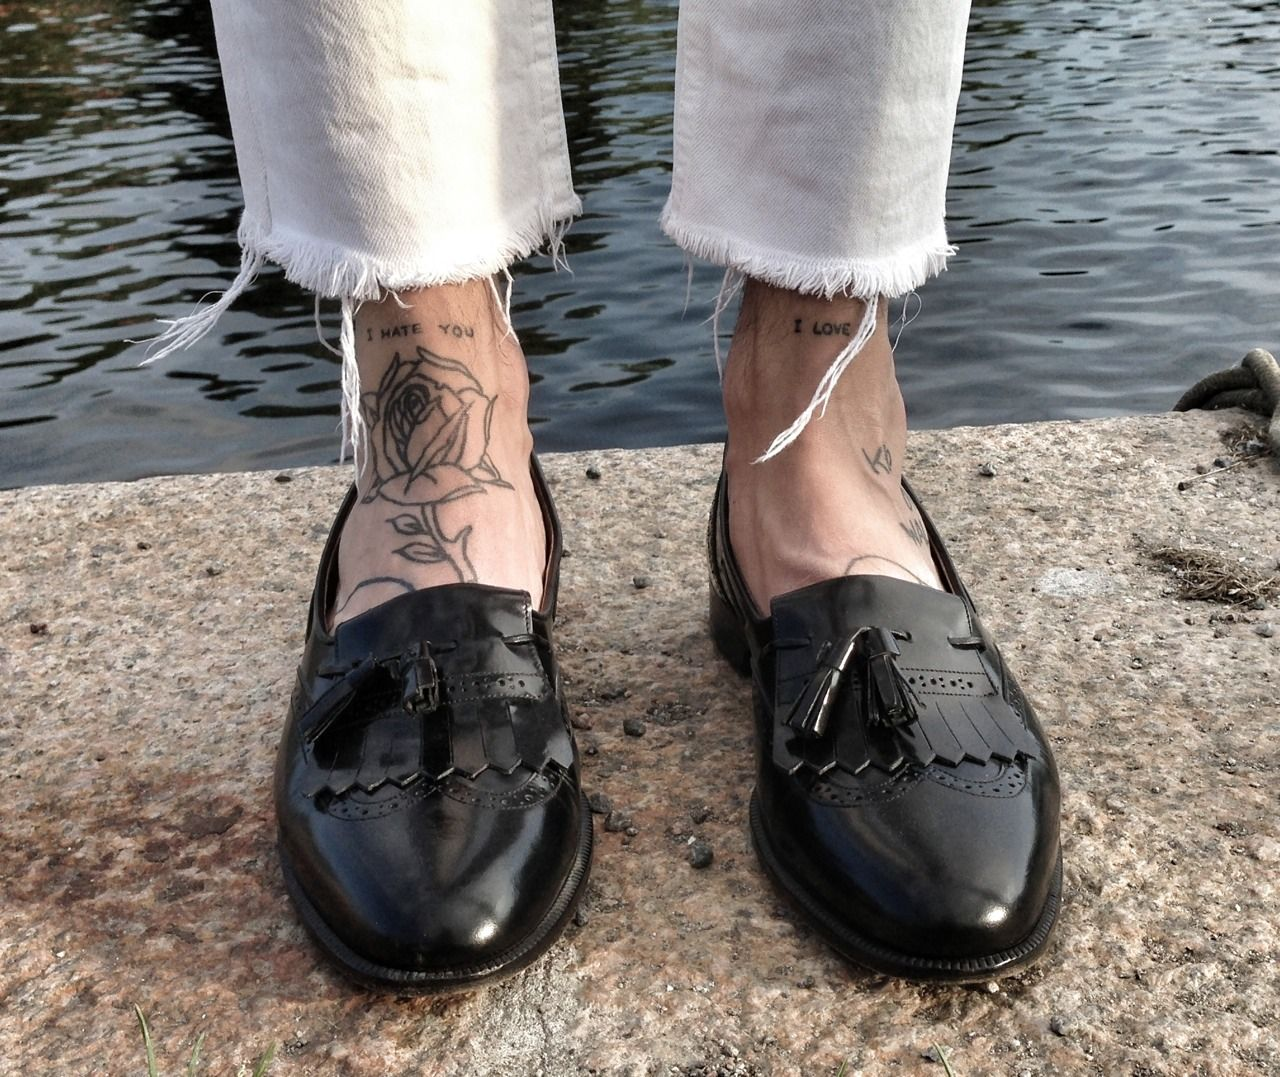 Source blackistheonlycolor via iskra the creator south for Ankle tattoos on men